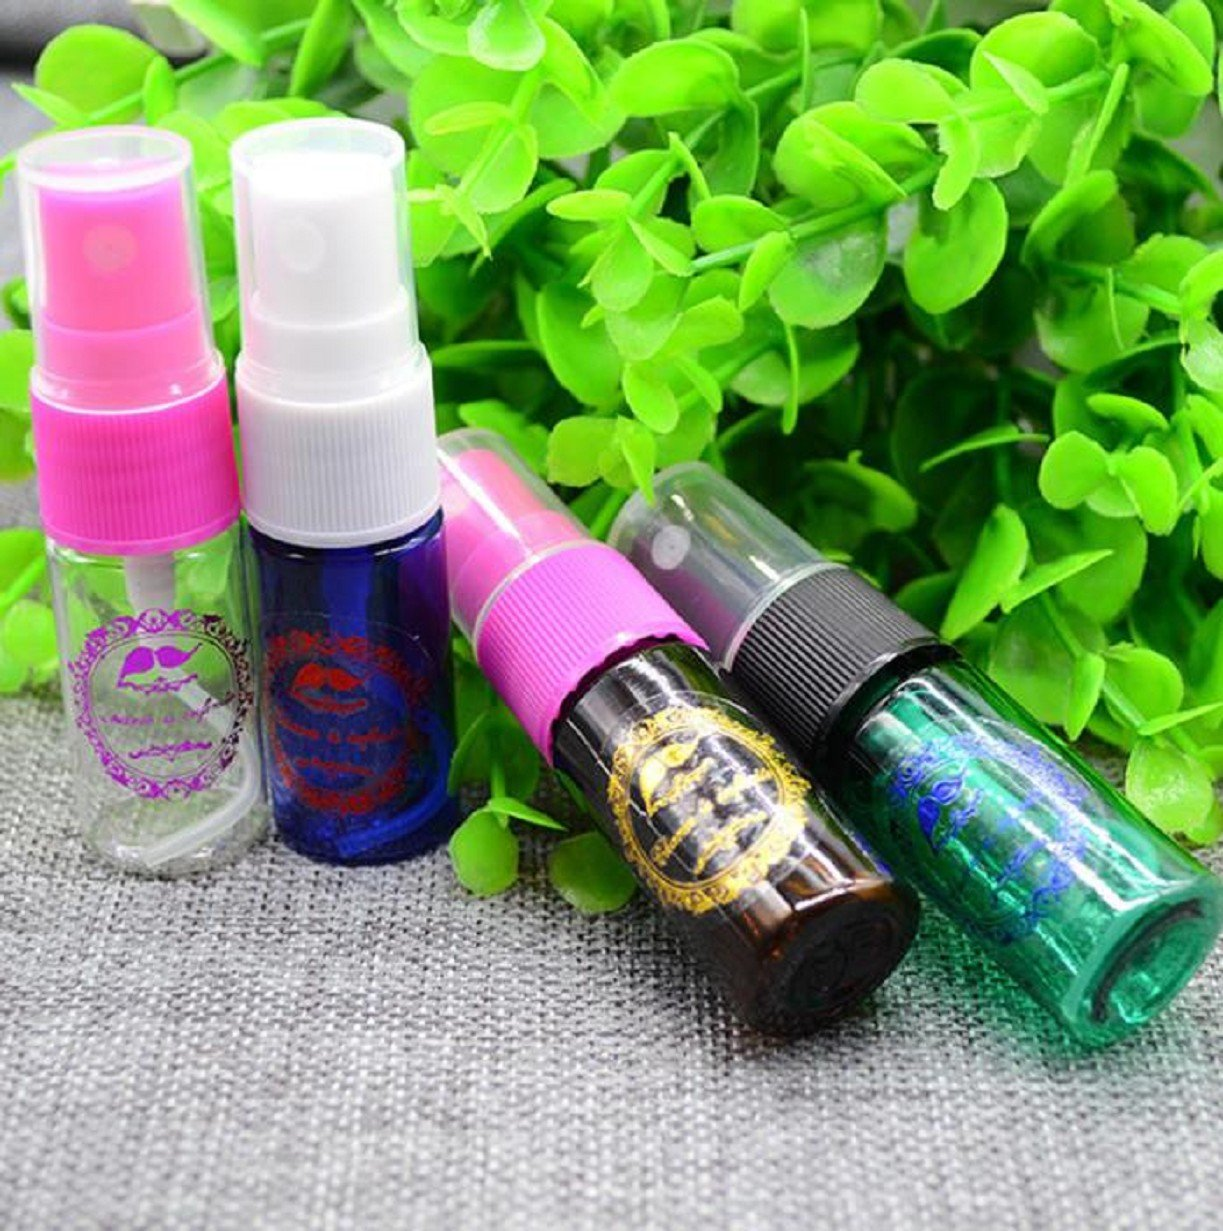 Vovotrade Empty Tubes Cosmetic Cream Travel Lotion Containers Bottle ...10ml by Vovotrade (Image #4)